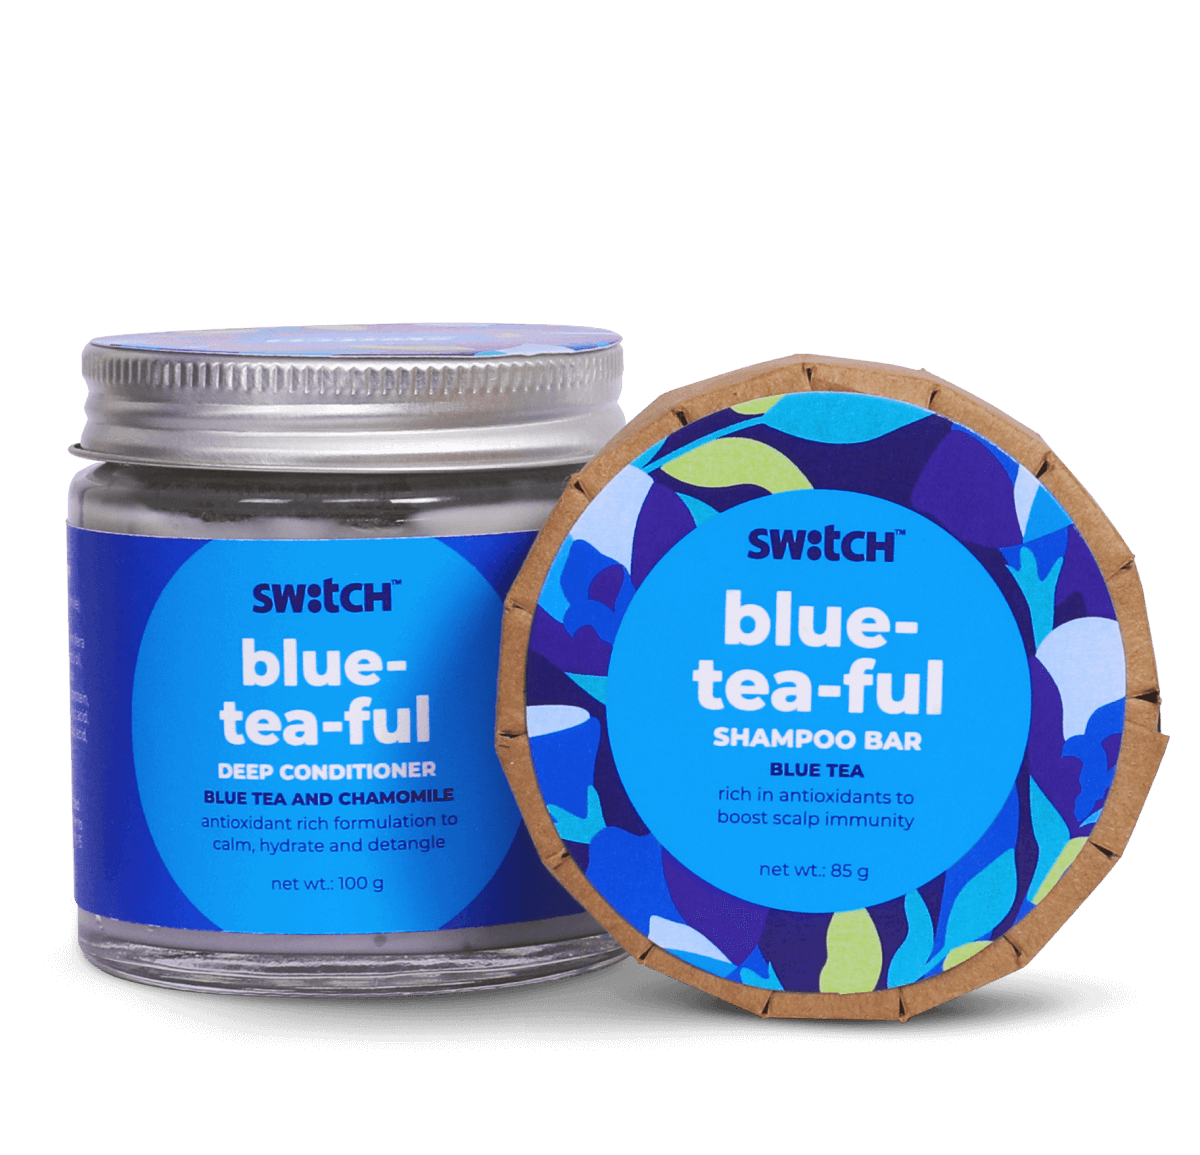 Blue-Tea-Ful Haircare Combo Hero Image